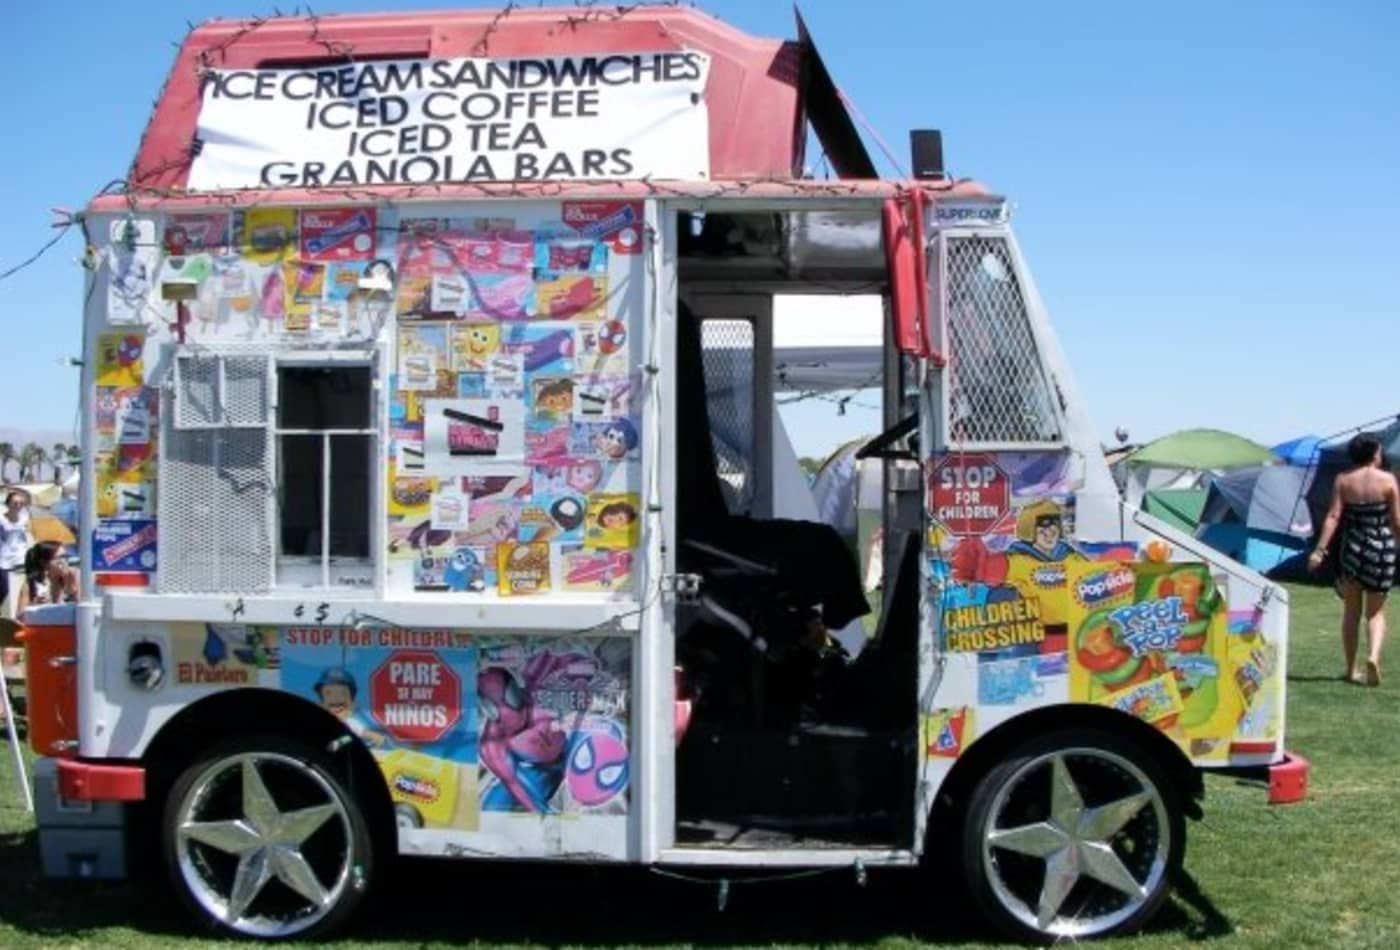 Used Food Trucks For Sale Under 5000 >> How Coolhaus Ice Cream Went From One Food Truck To Millions In Sales